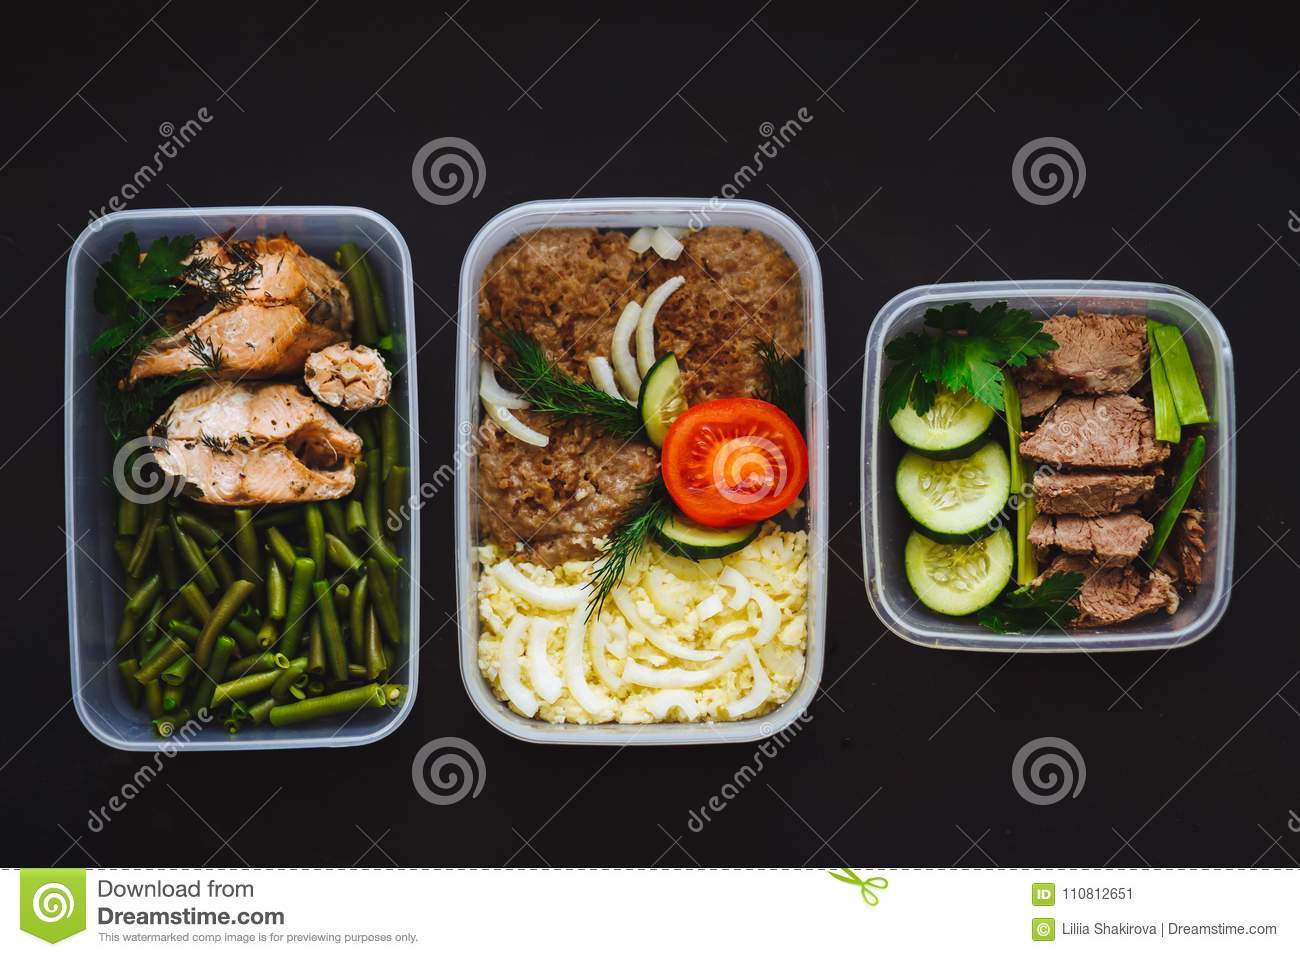 The healthy food in the containers on black background: snack, dinner, lunch. Baked fish, beans, beef cutlets, mashed potatoes, me